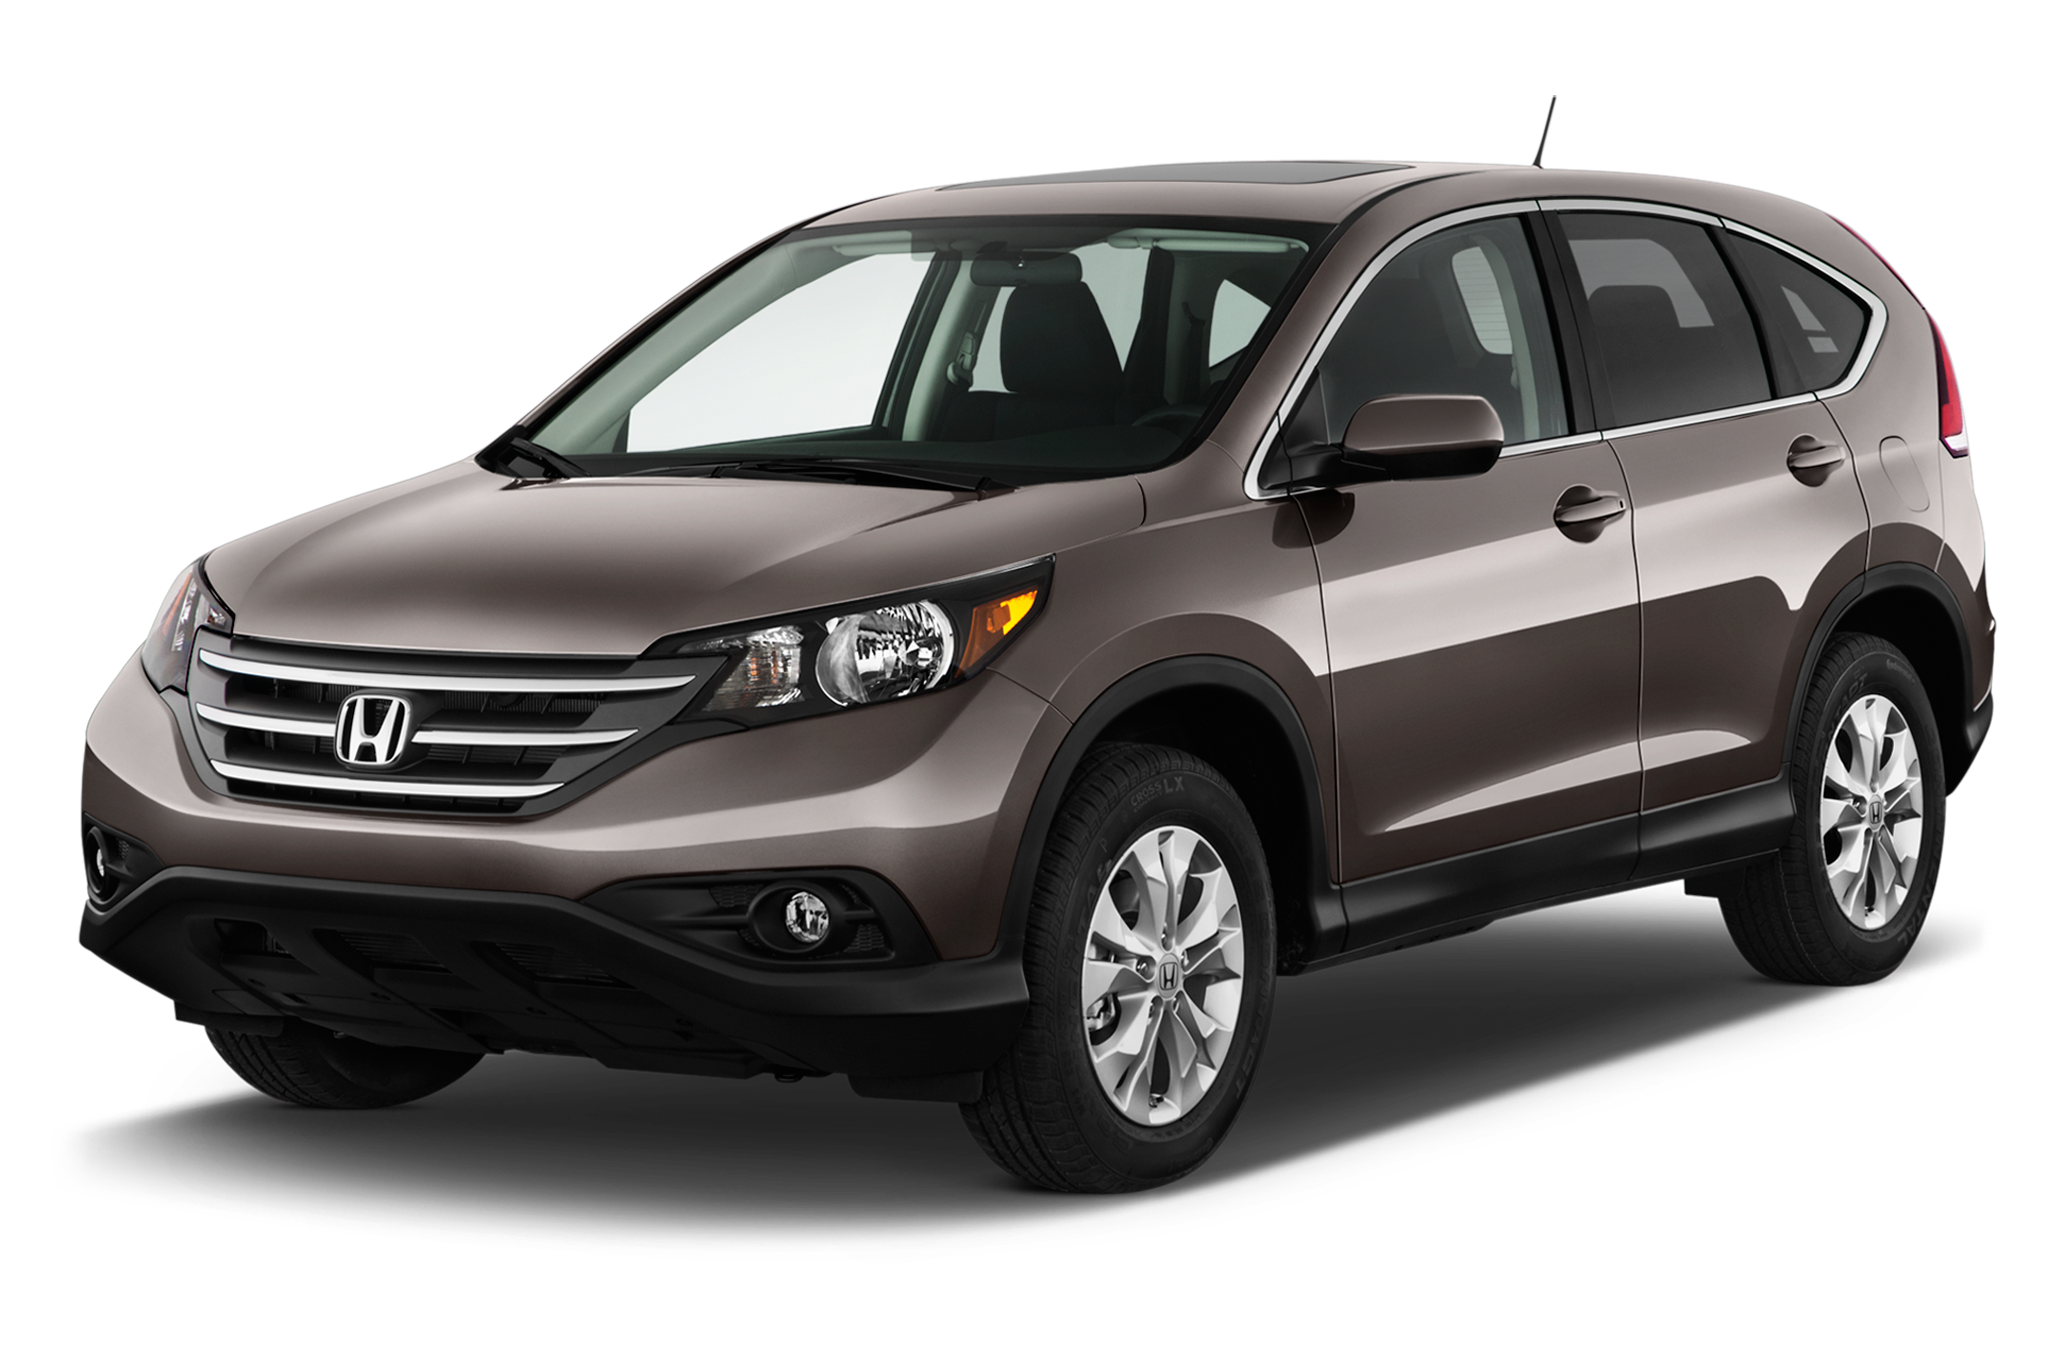 2012 honda cr v color options msn autos. Black Bedroom Furniture Sets. Home Design Ideas